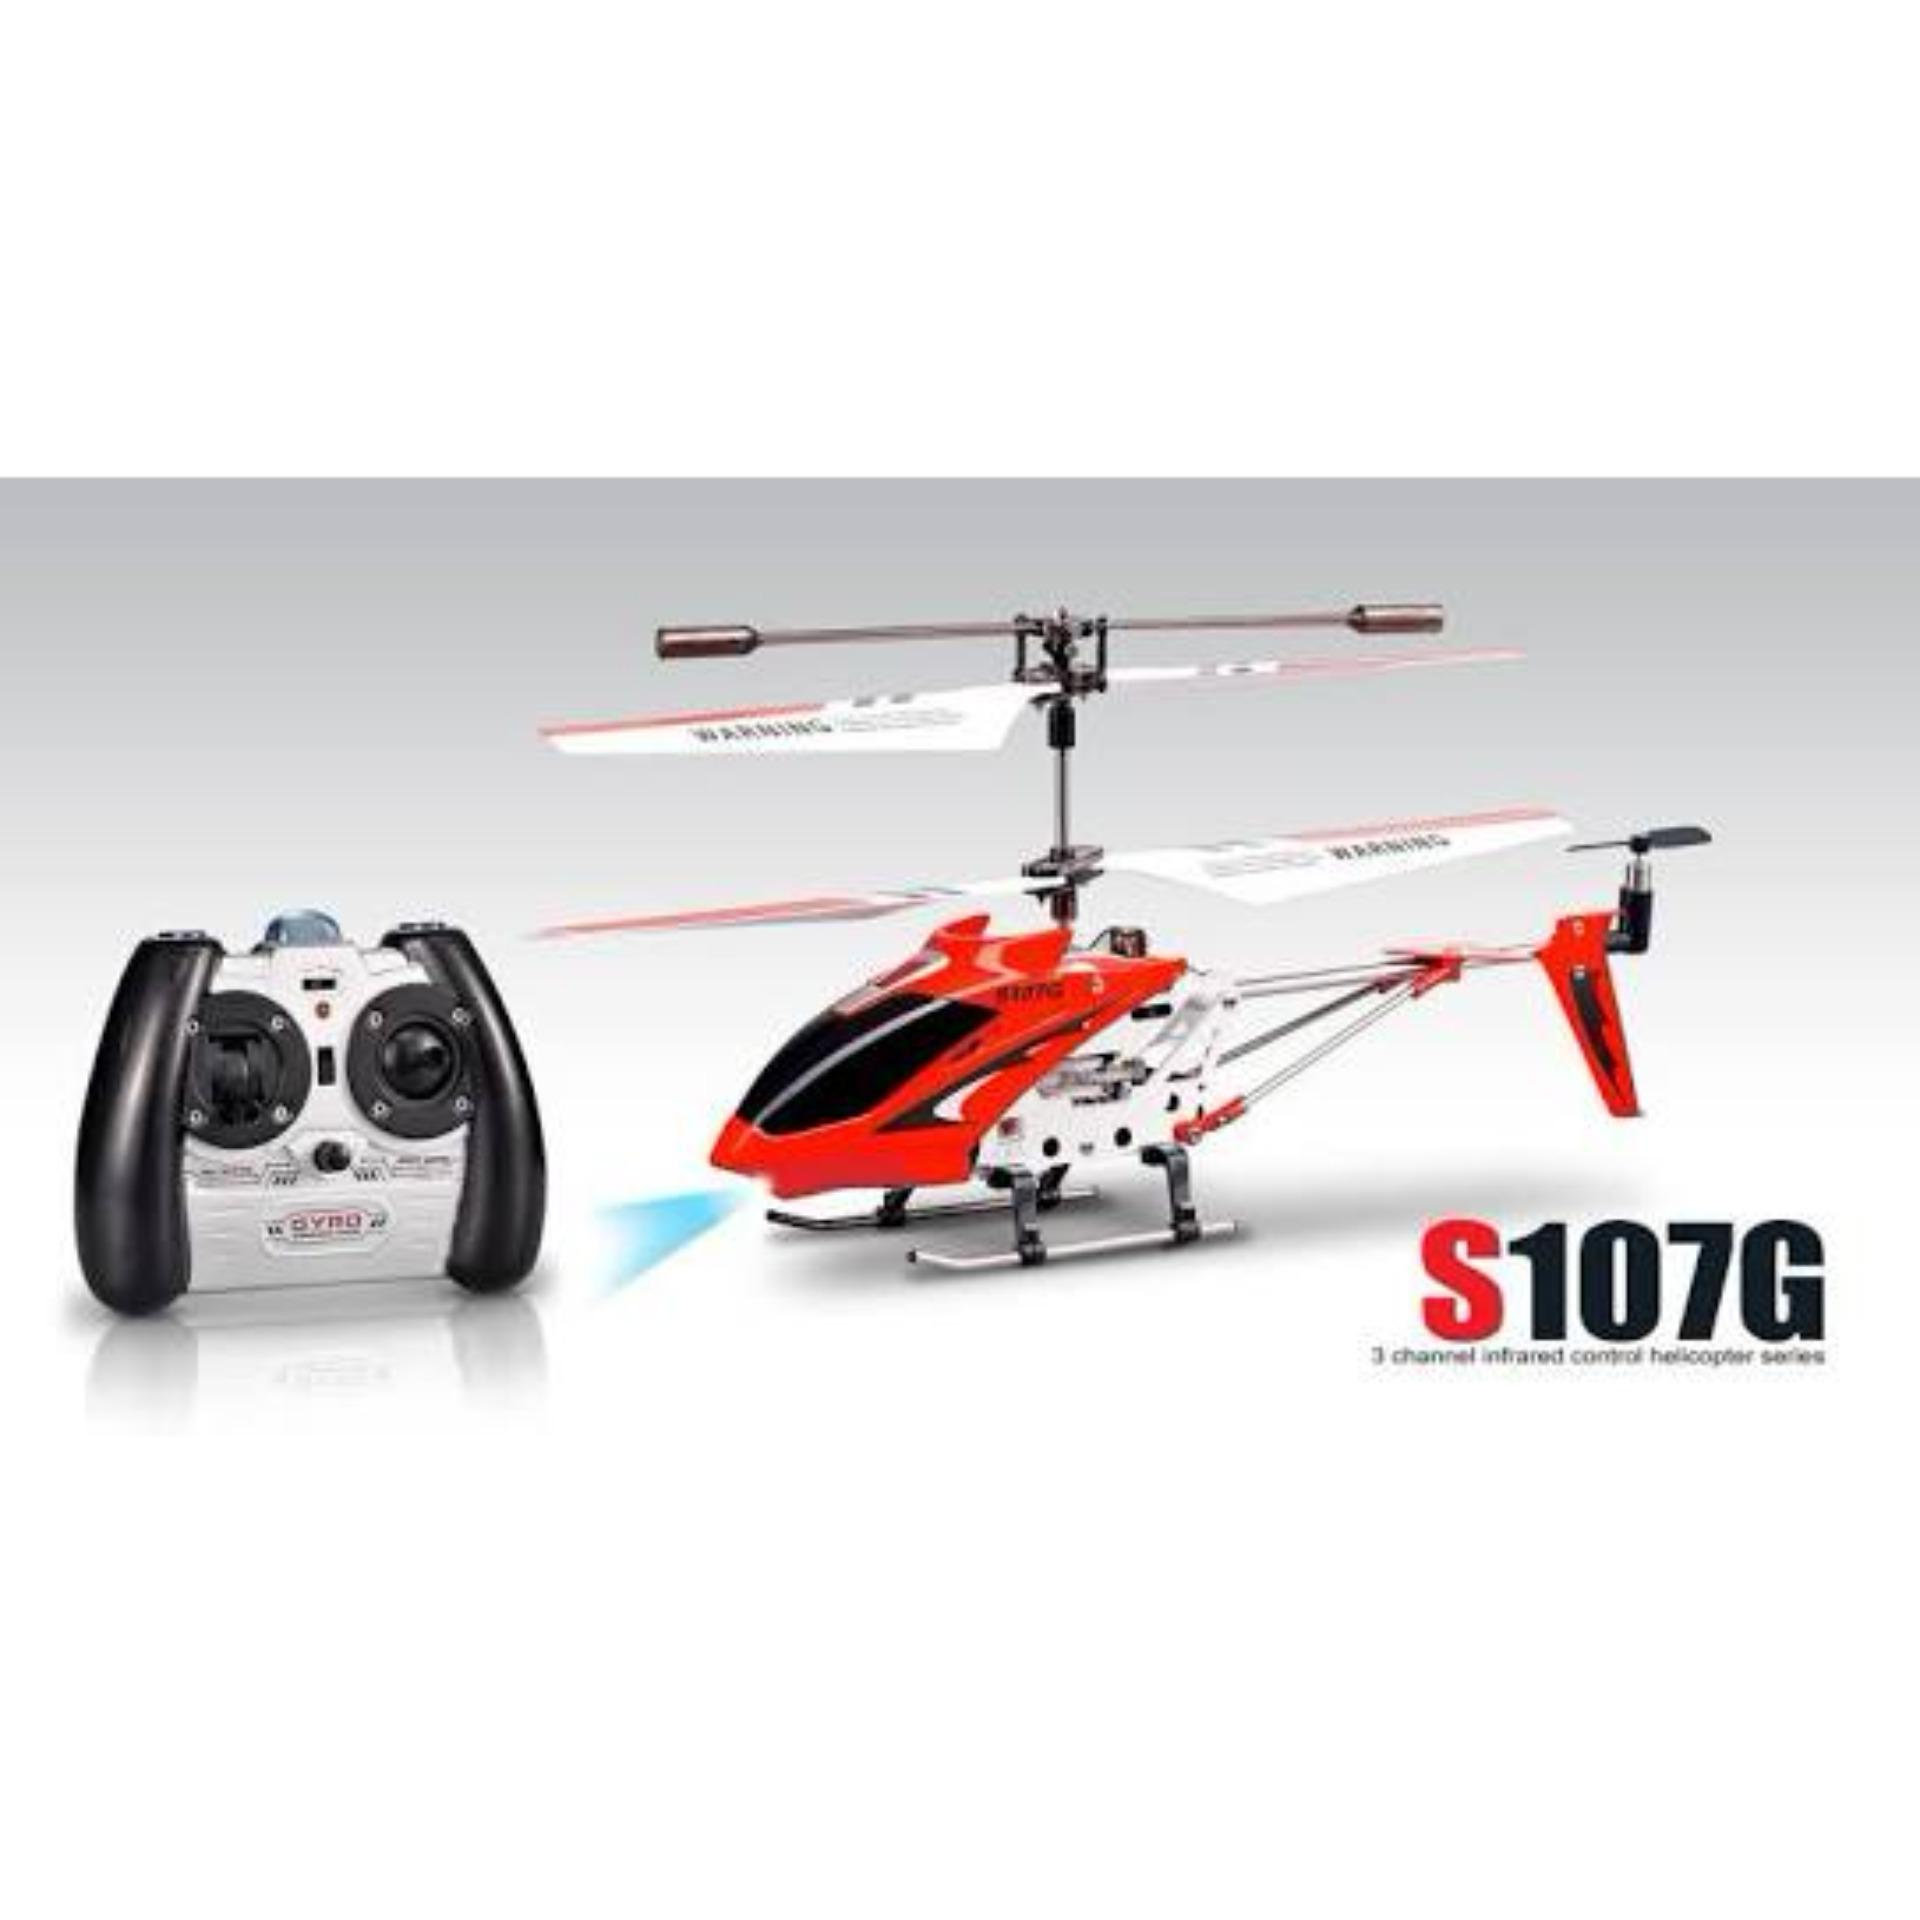 Jual Produk Helicopter R C Toys Terbaru Di Lazadacoid